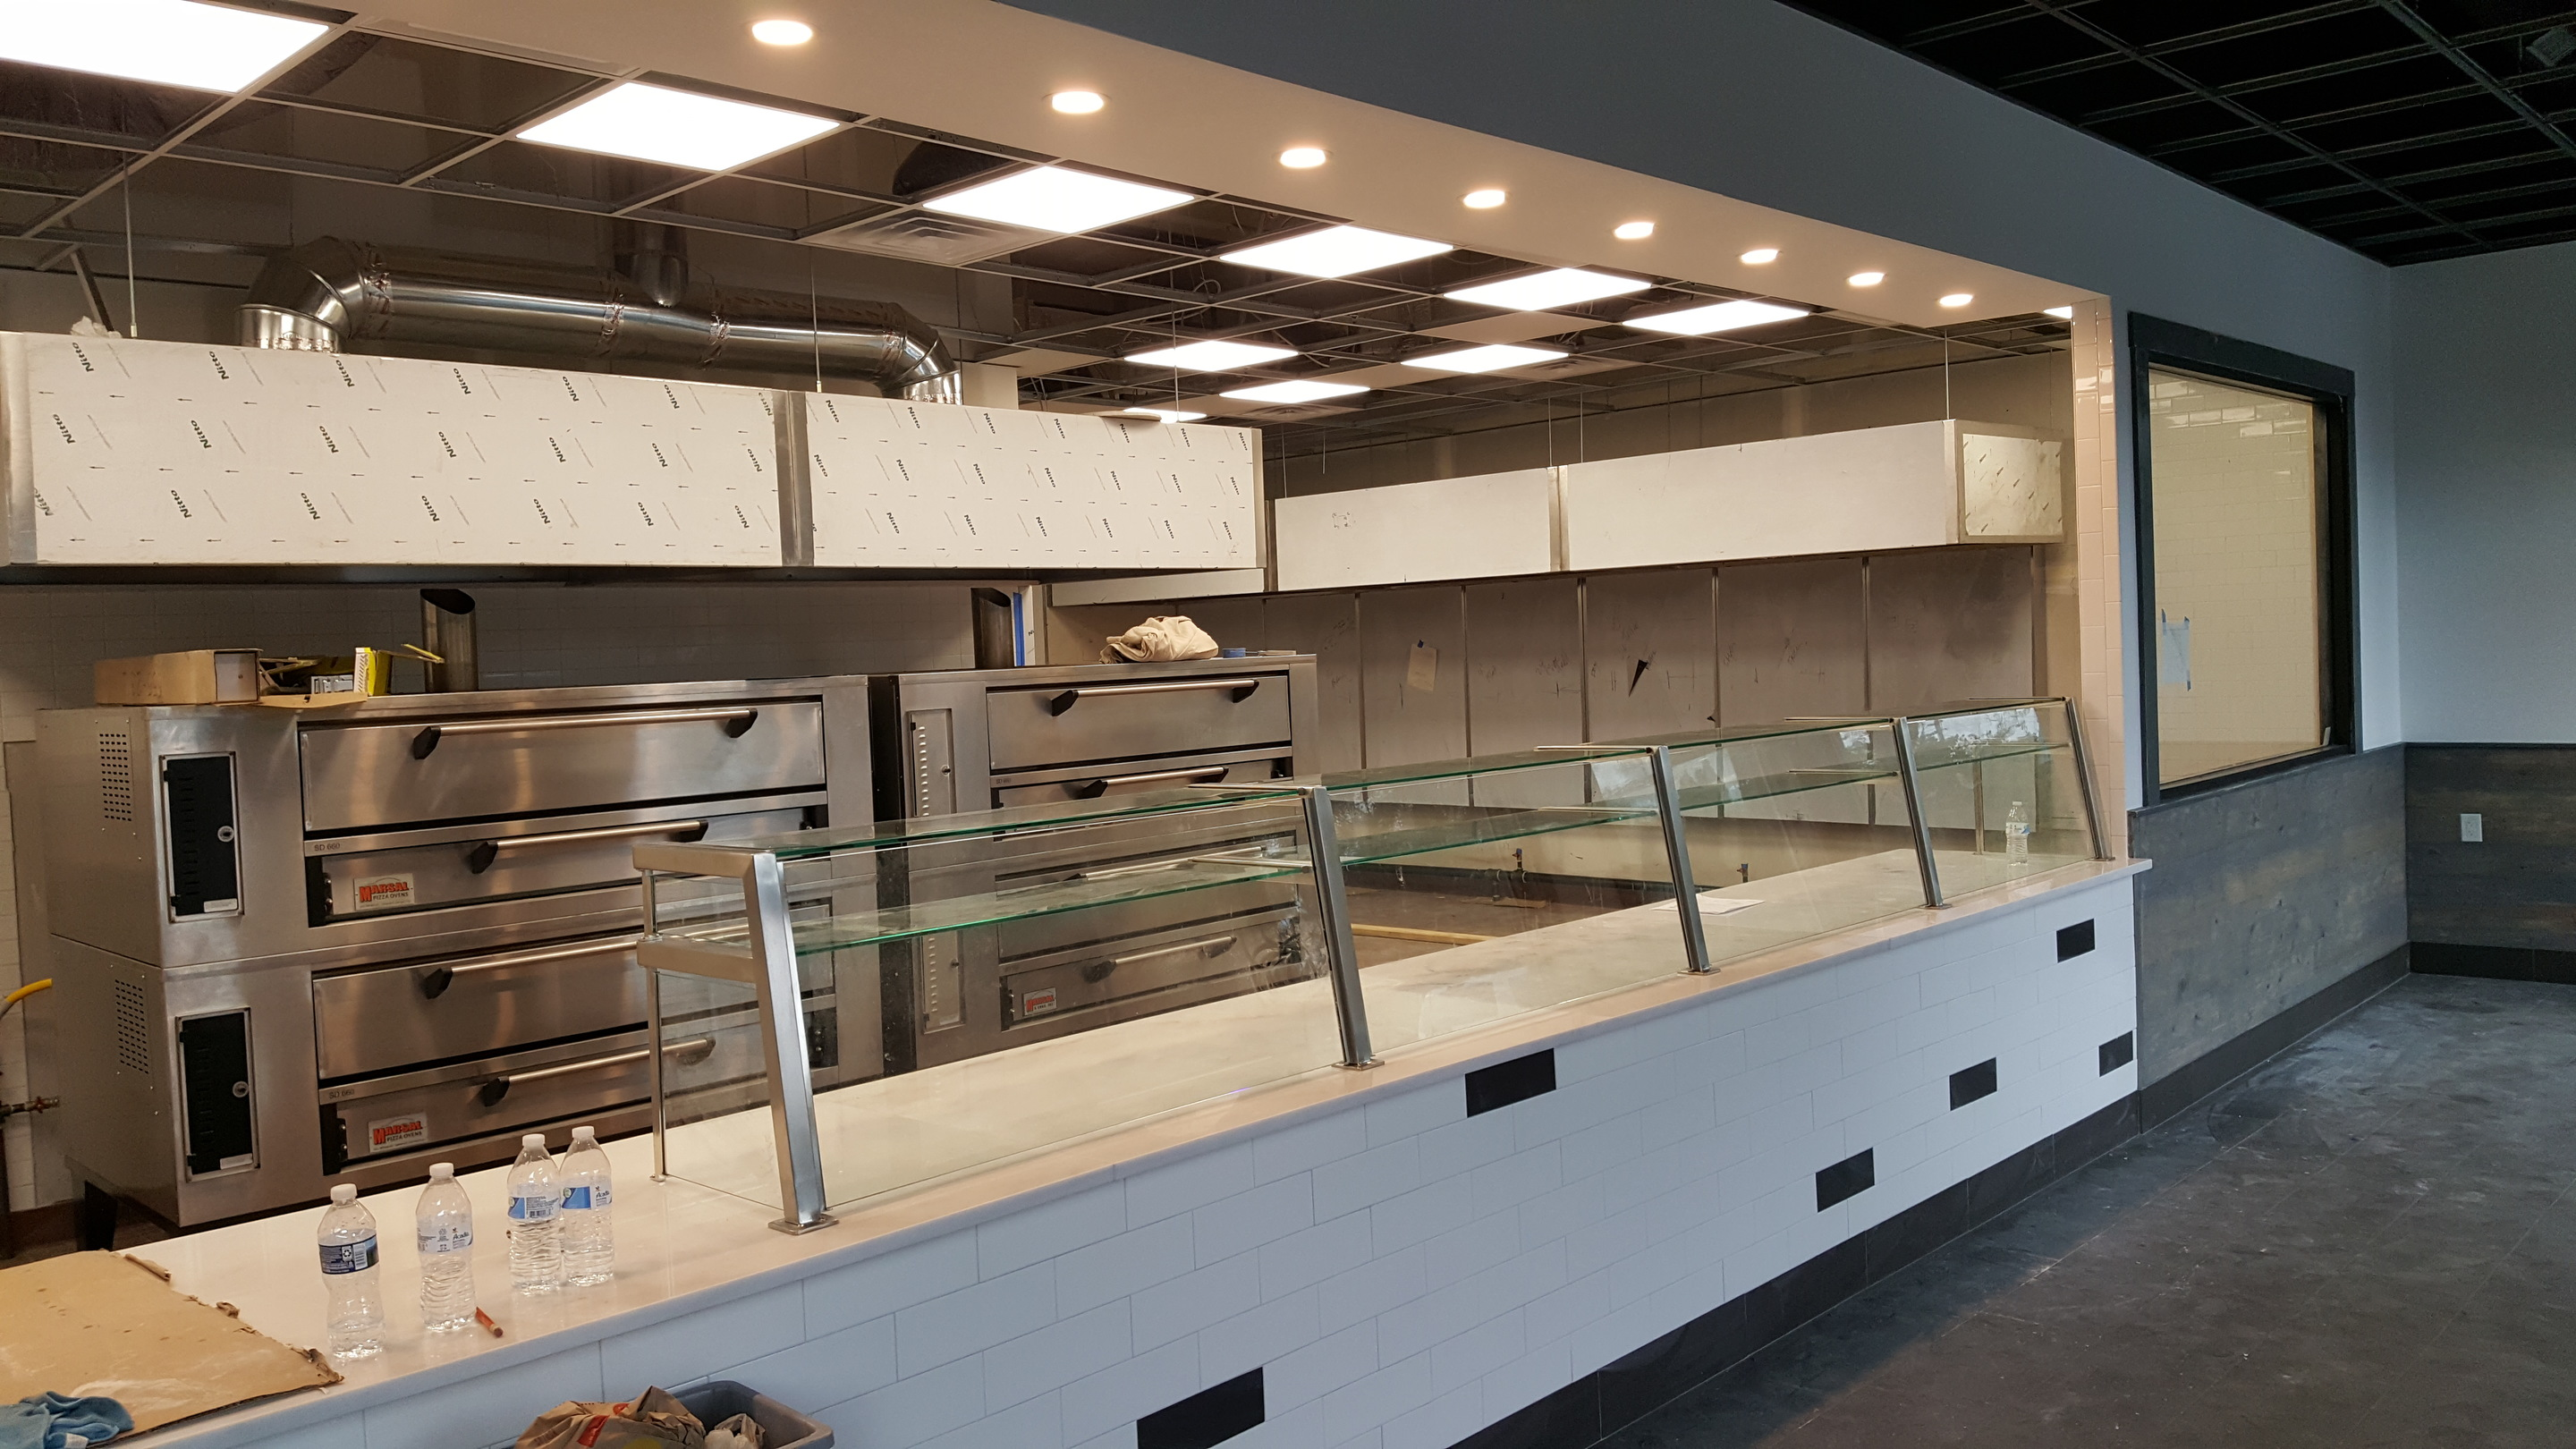 Two Tier Satin Stainless Steel Food Shield with LED Lights - Spatola's Pizza